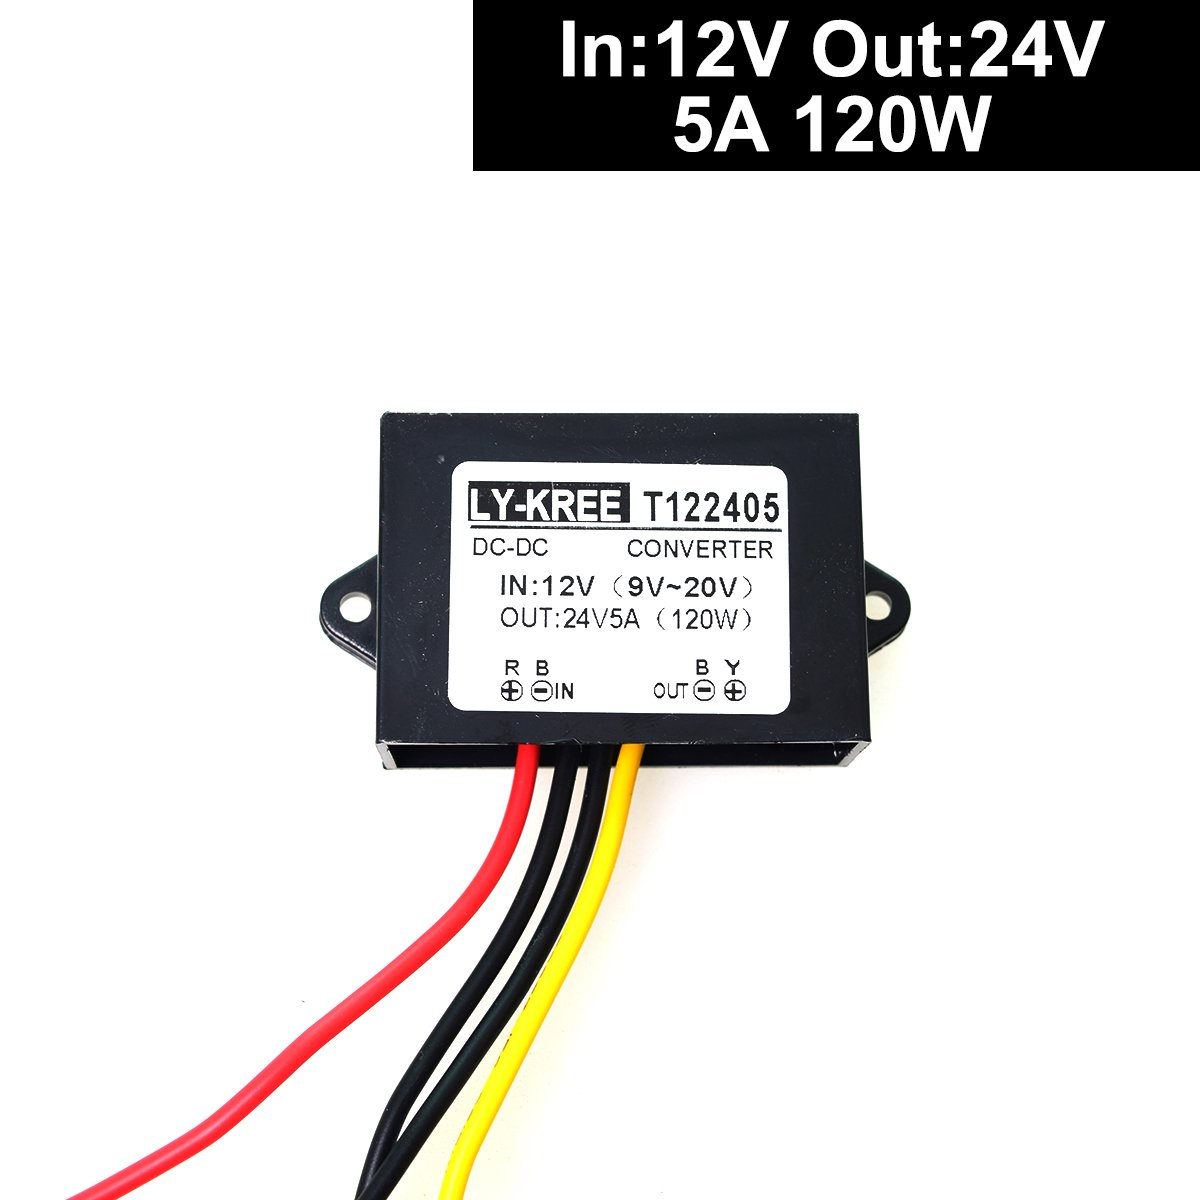 Dc 12v To 24v Step Up Converter Regulator 10a 240w Power Trolling Motor Plug Wiring Diagram 3 Wire Connecter Supply Adapter For Car Truck Vehicle Boat Solar System Etc